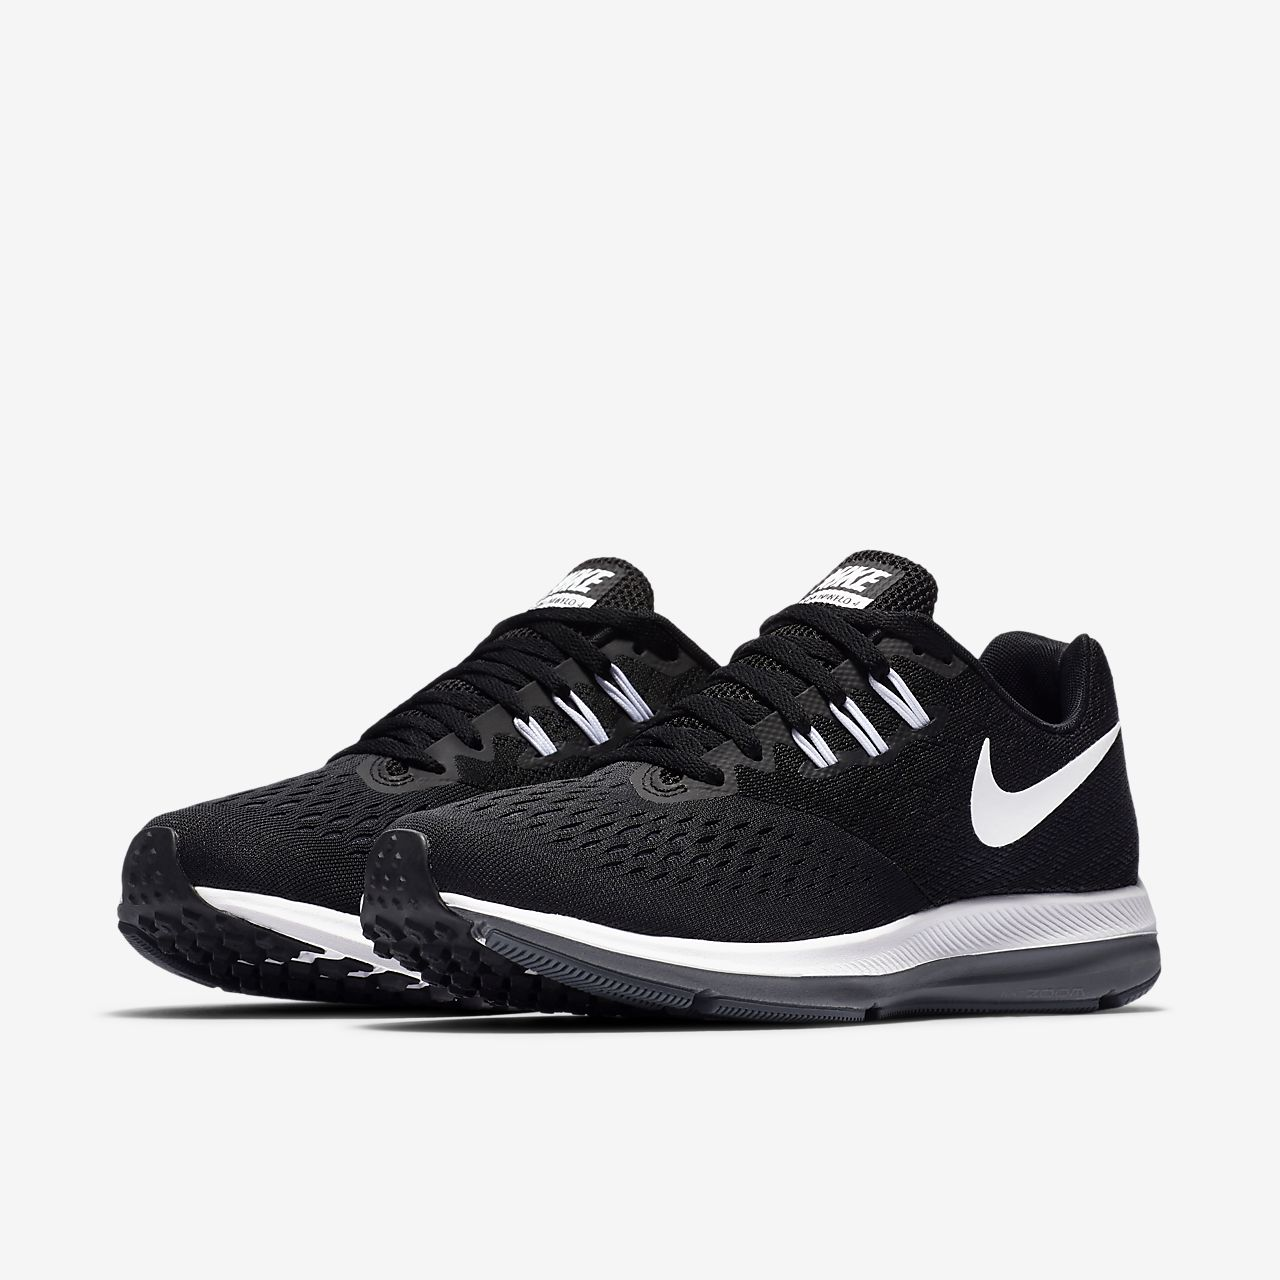 Nike Run All Day Chaussures de course Femme Noir/Blanc Course Jogging Baskets Baskets